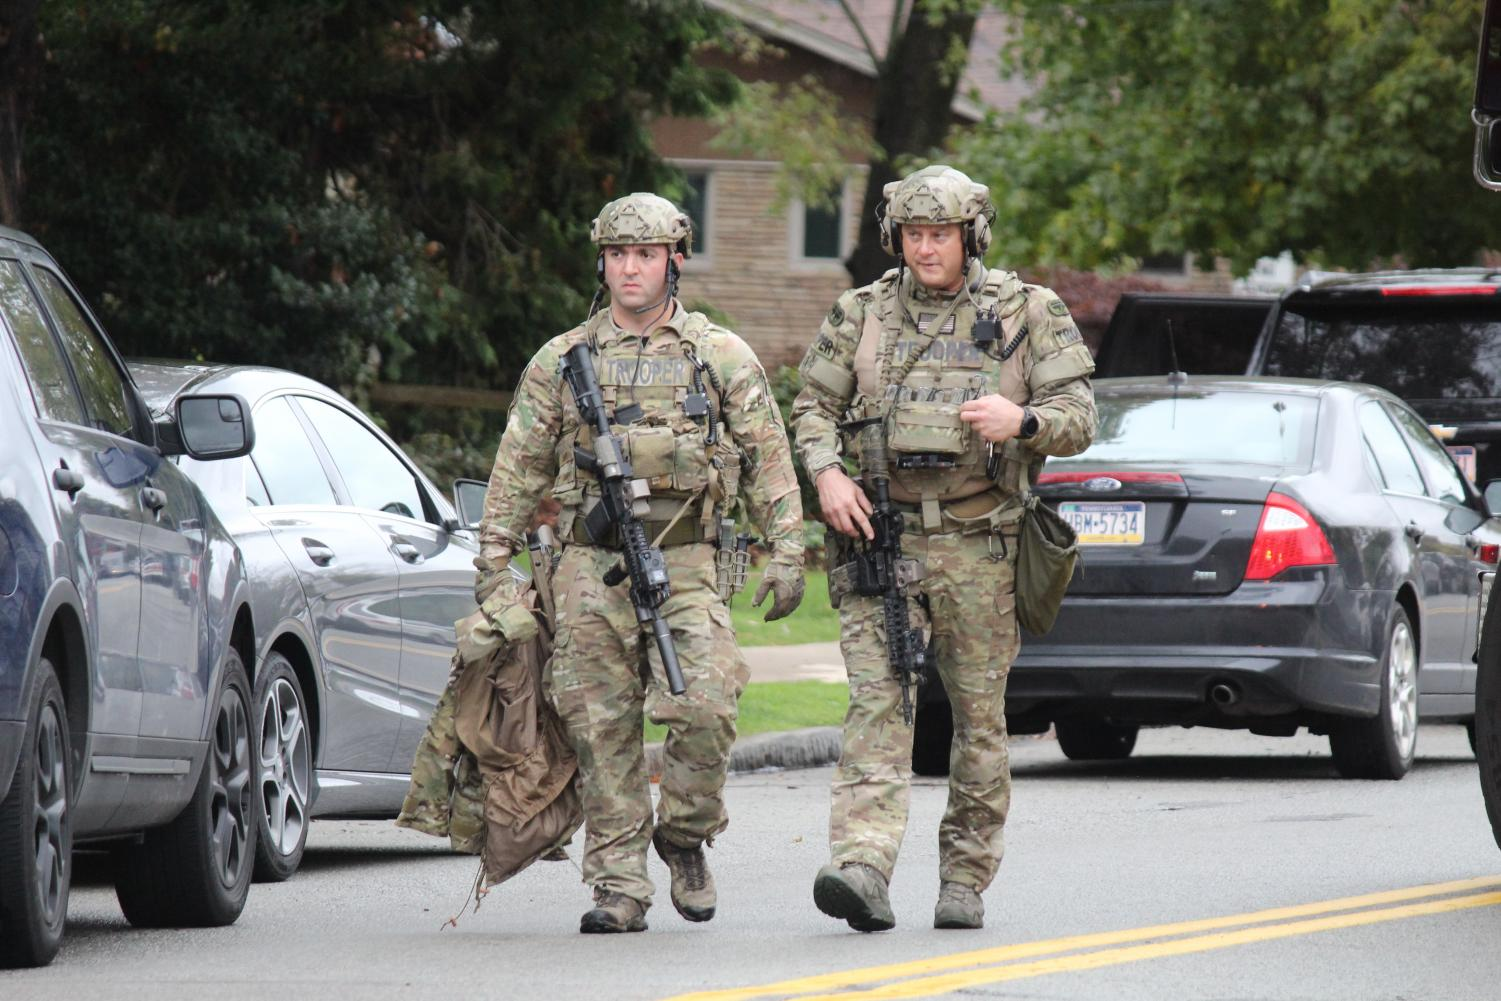 Pittsburgh FBI, S.W.A.T., police, paramedics, and Pennsylvania State Troopers were all at the Tree of Life Synagogue in Pittsburgh during a mass shooting October 27, 2018.